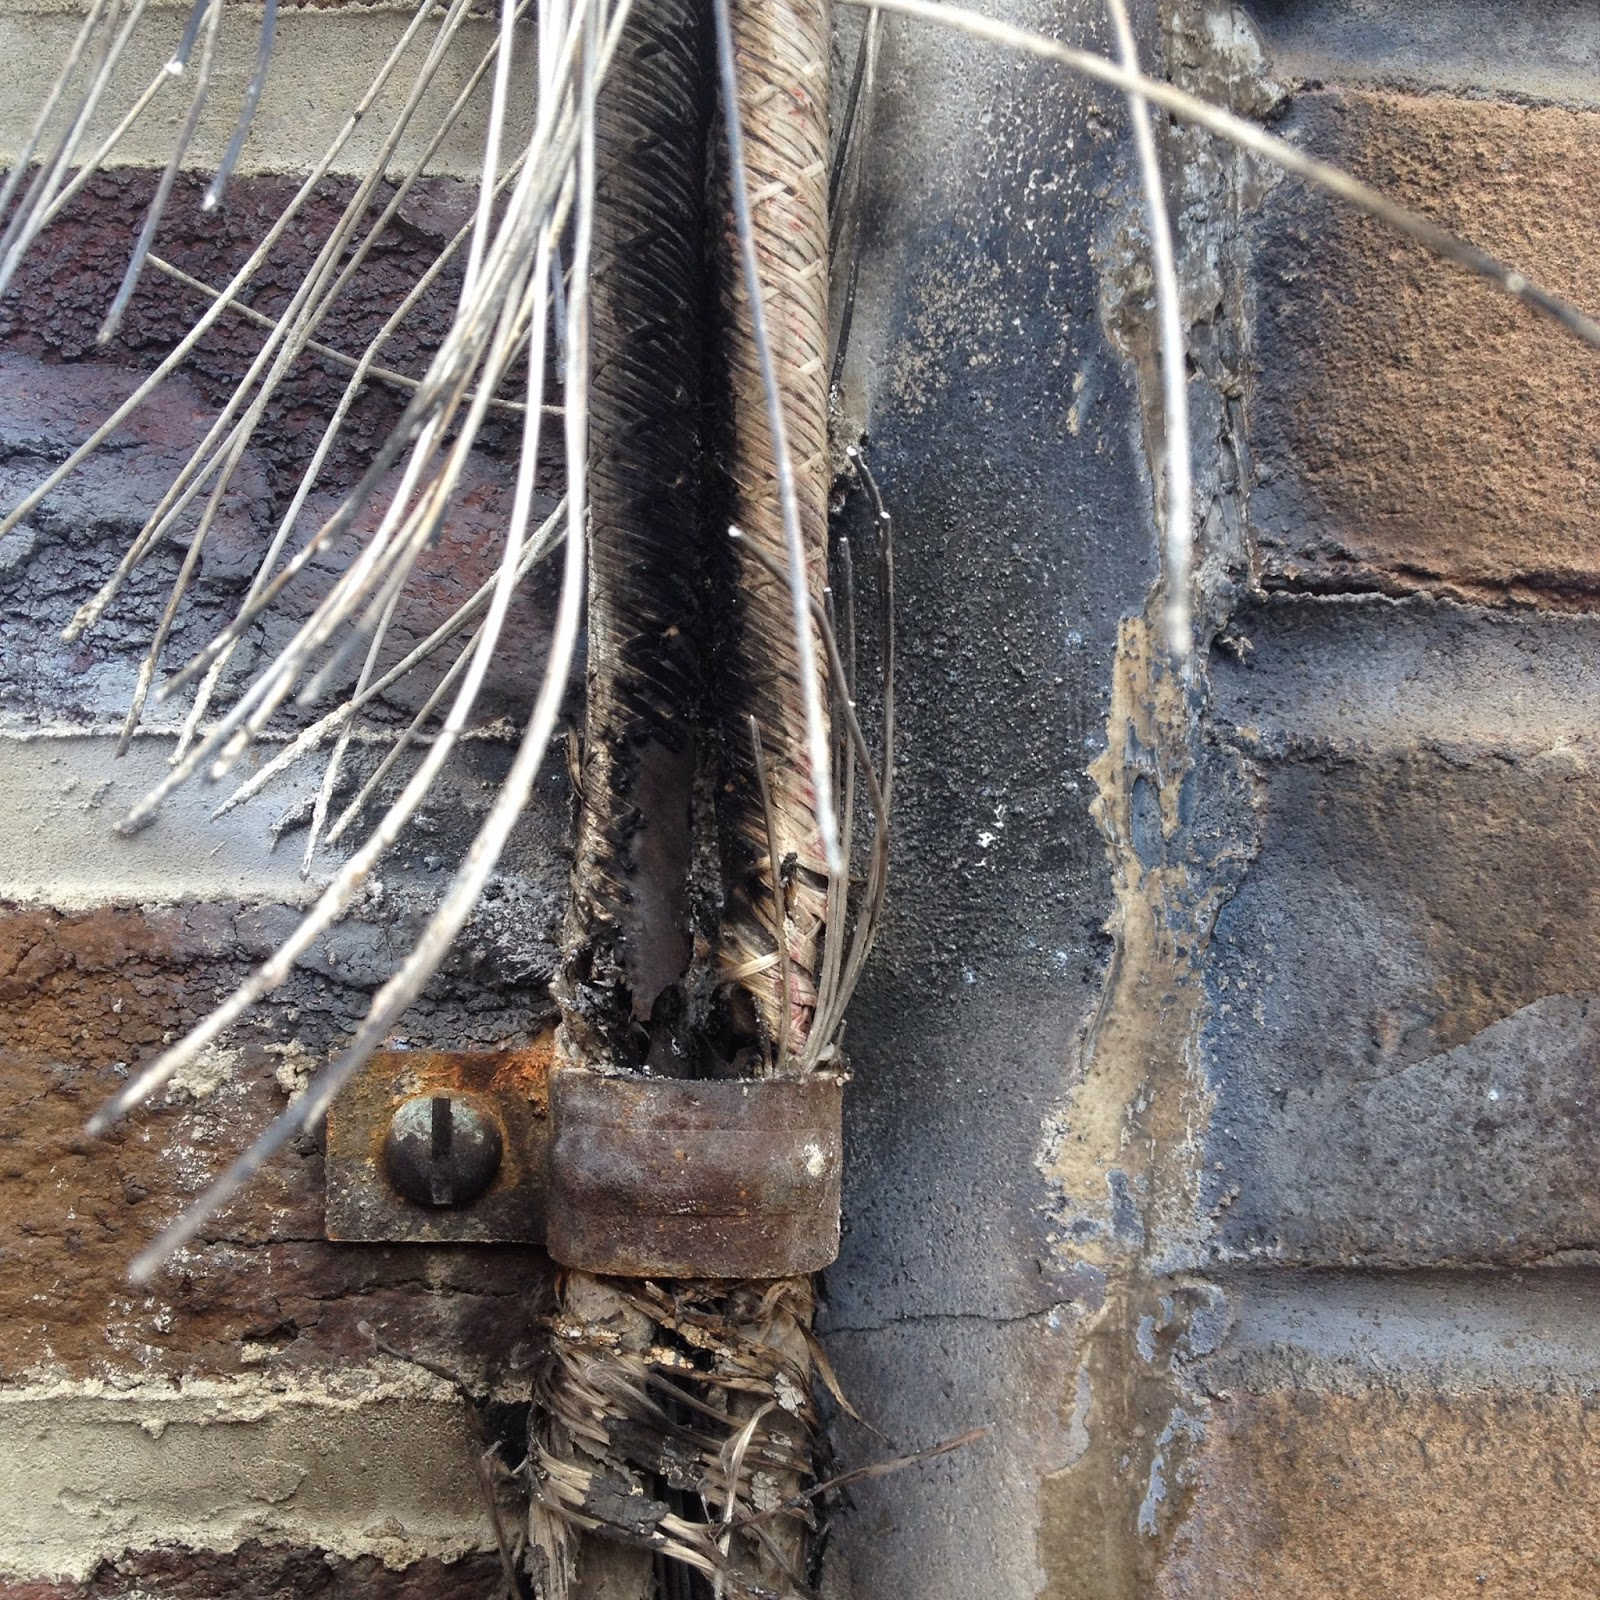 wiring failure, frayed, burned out wiring, PECO wire